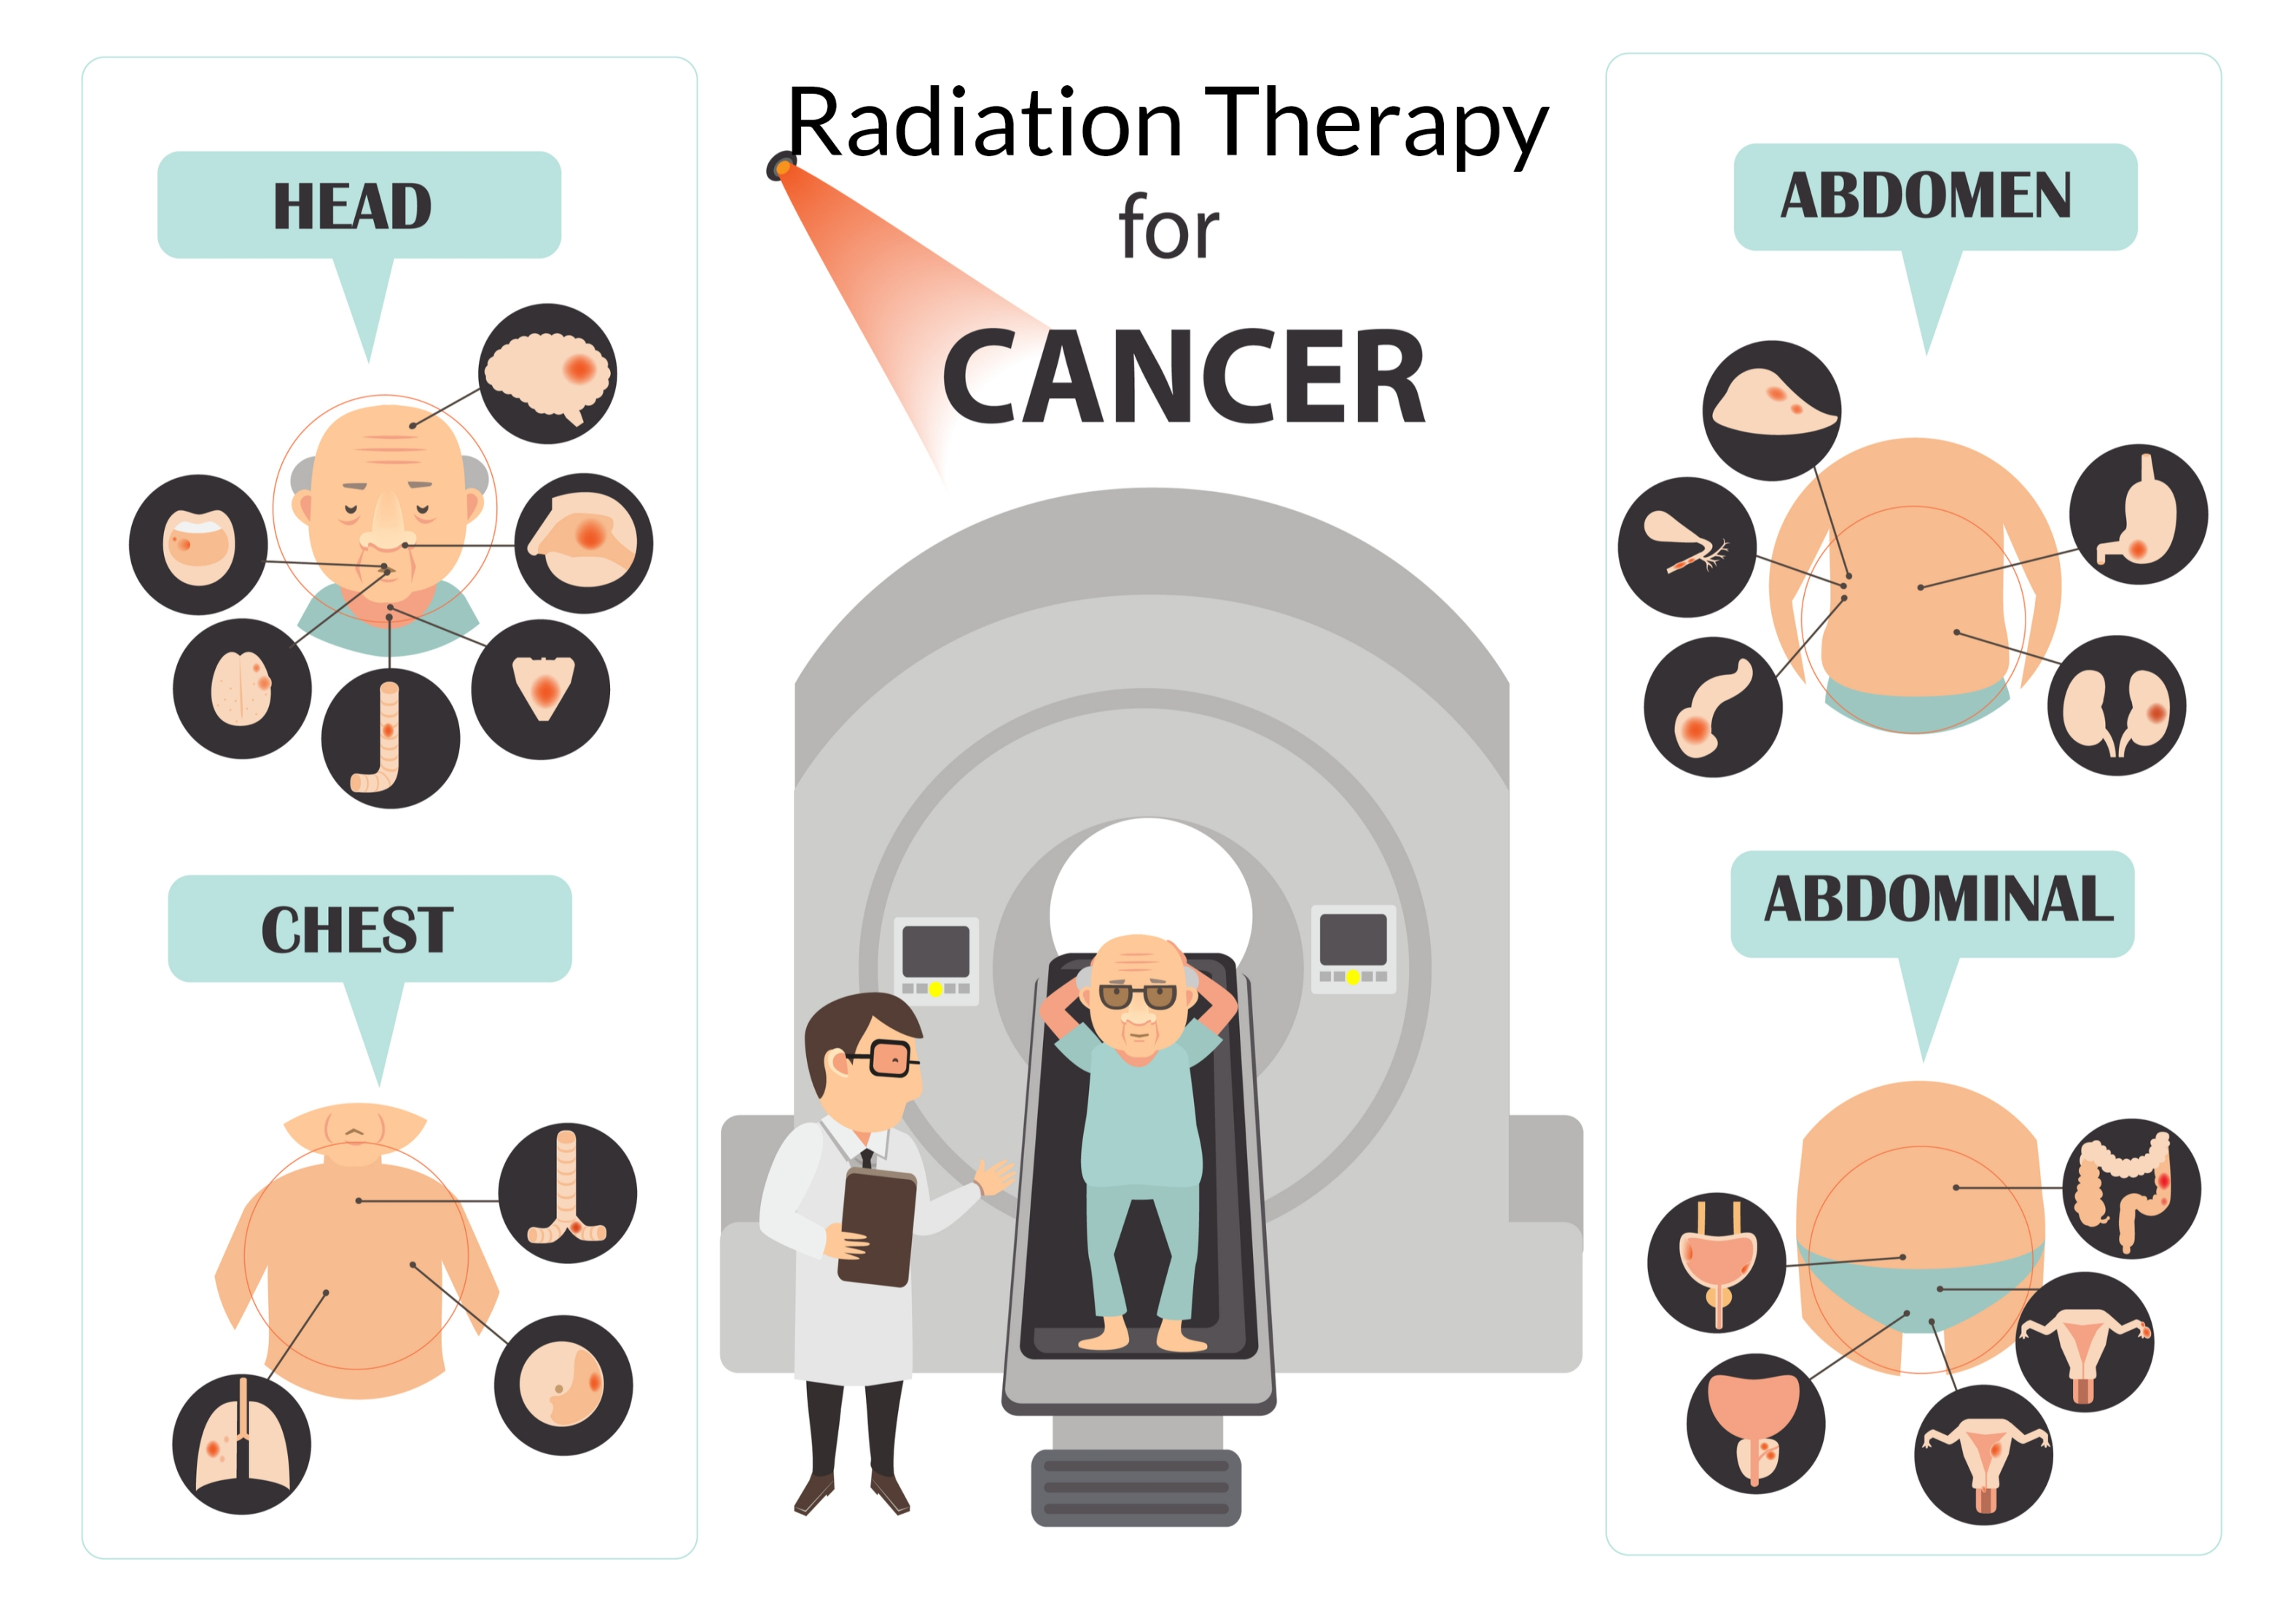 Radiation Therapy For Cancer to treat cancer safely and treating cancer